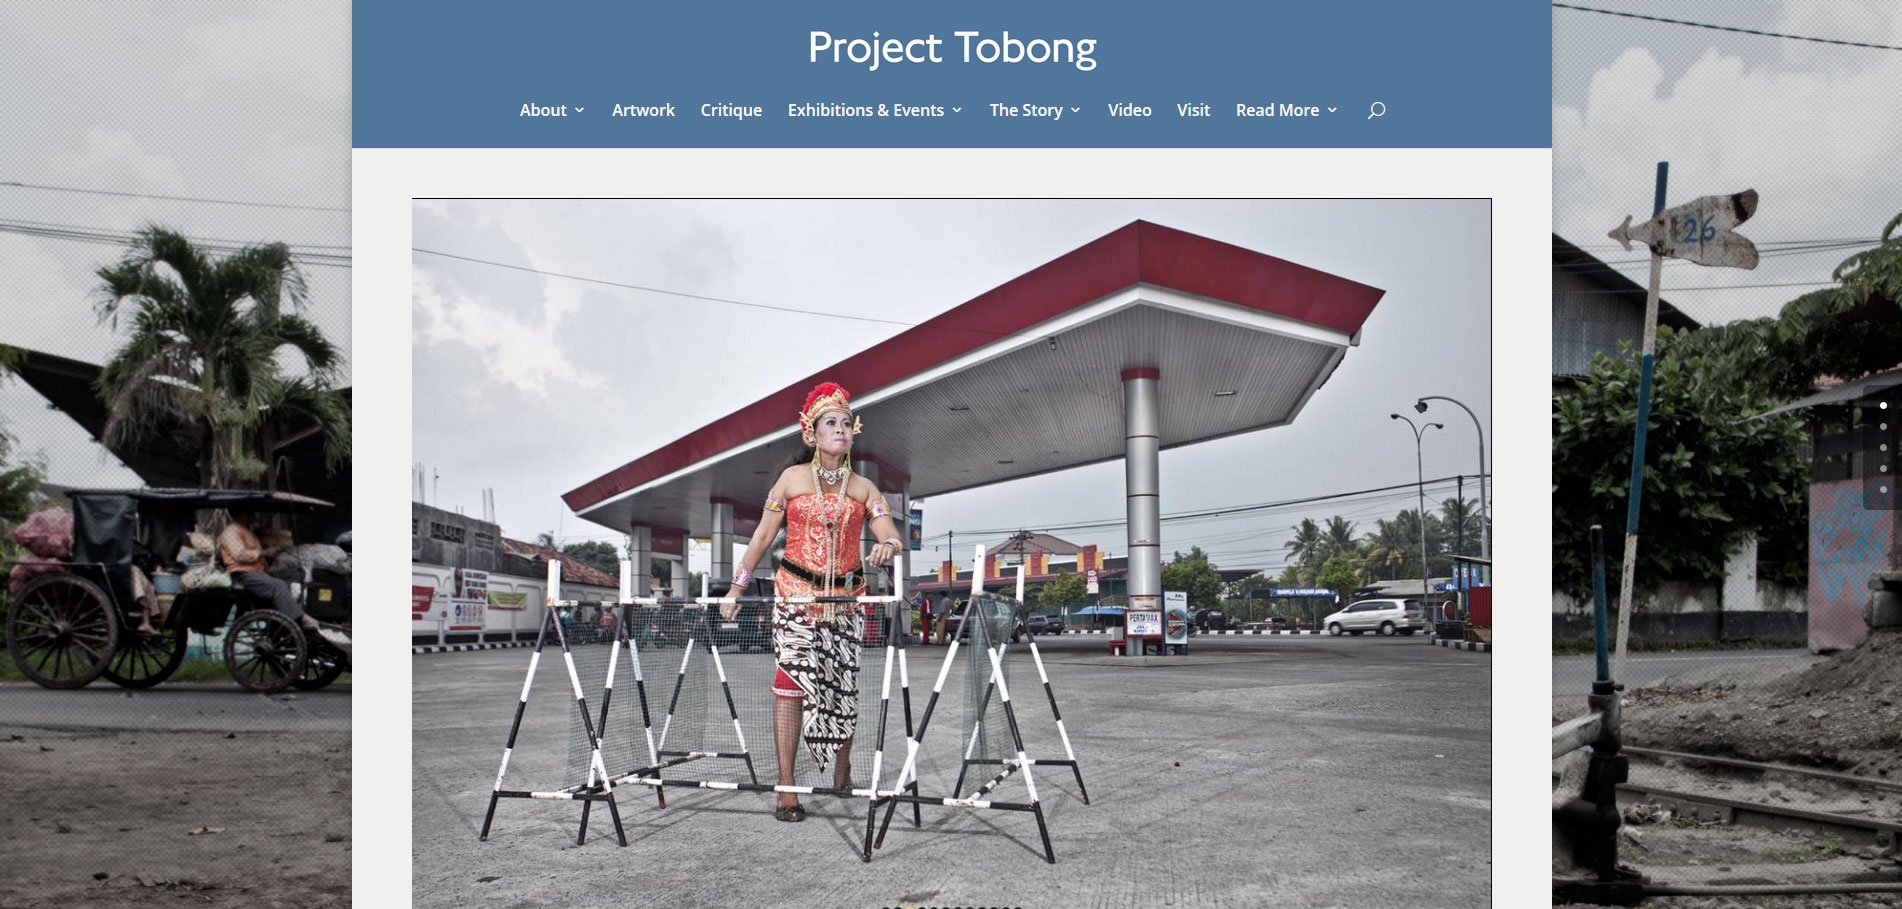 projecttobong